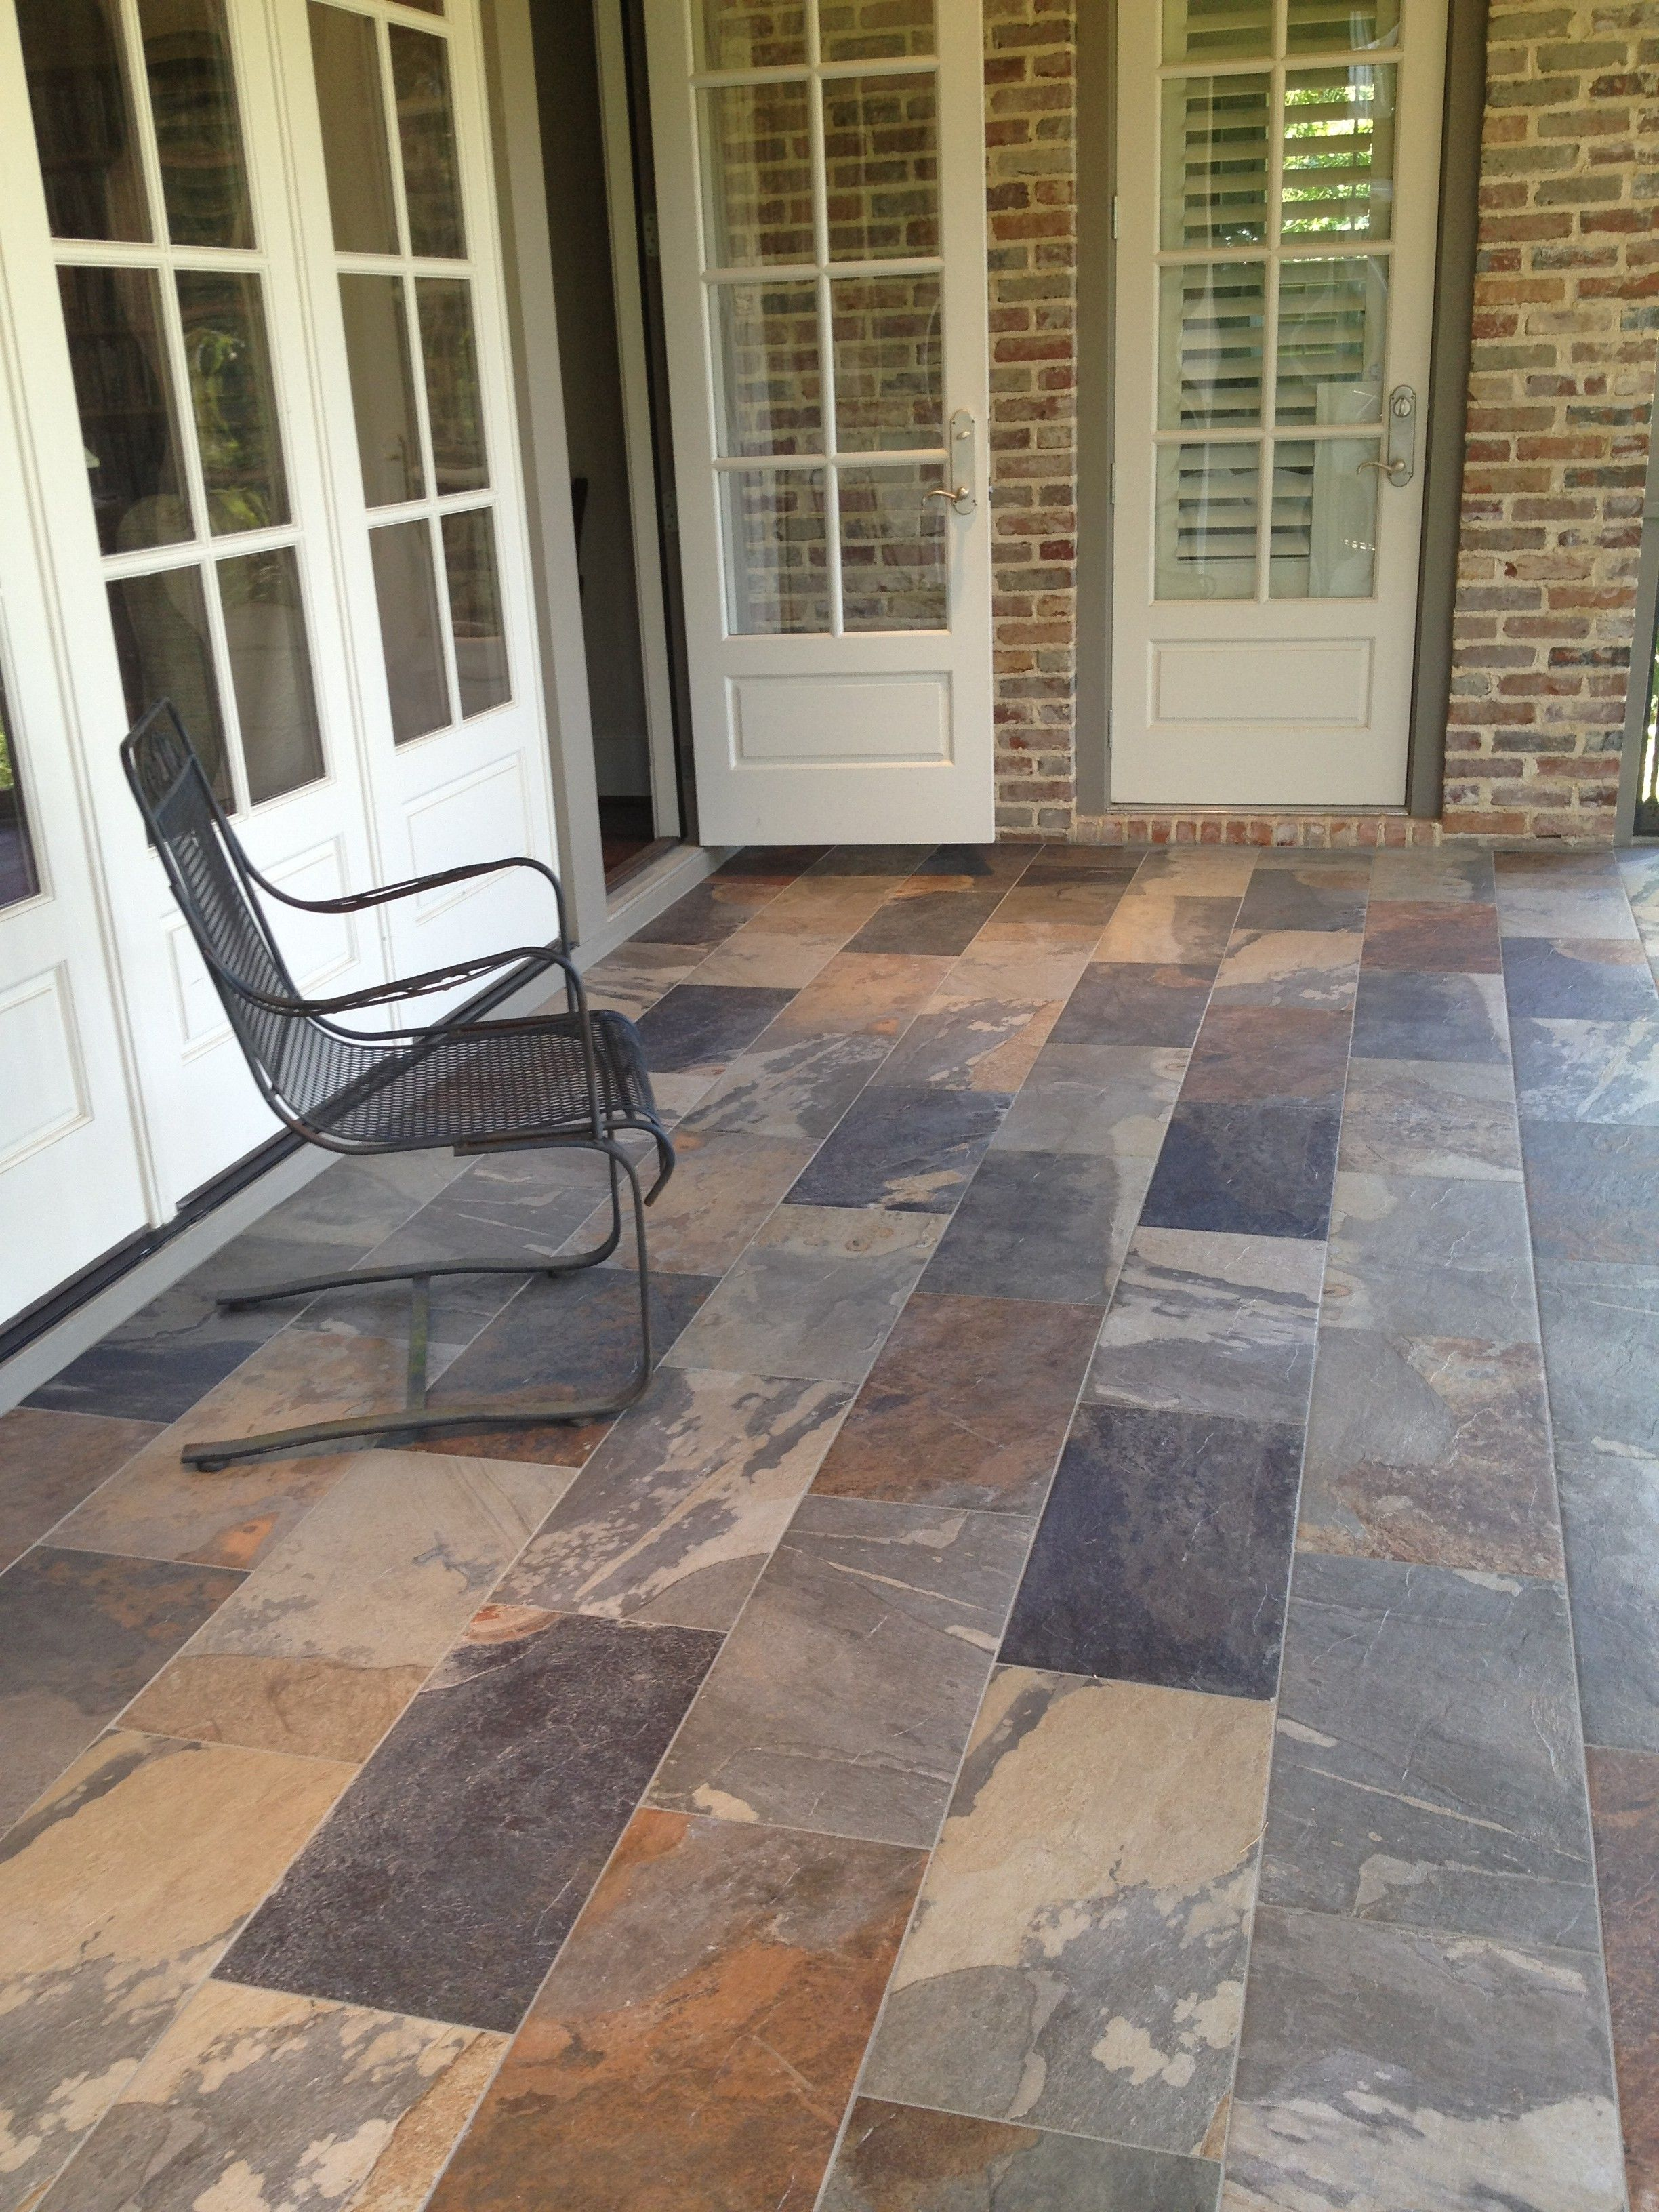 70 Awesome And Beautiful Front Porch Ideas Porch Tile Porch Design Porch Flooring